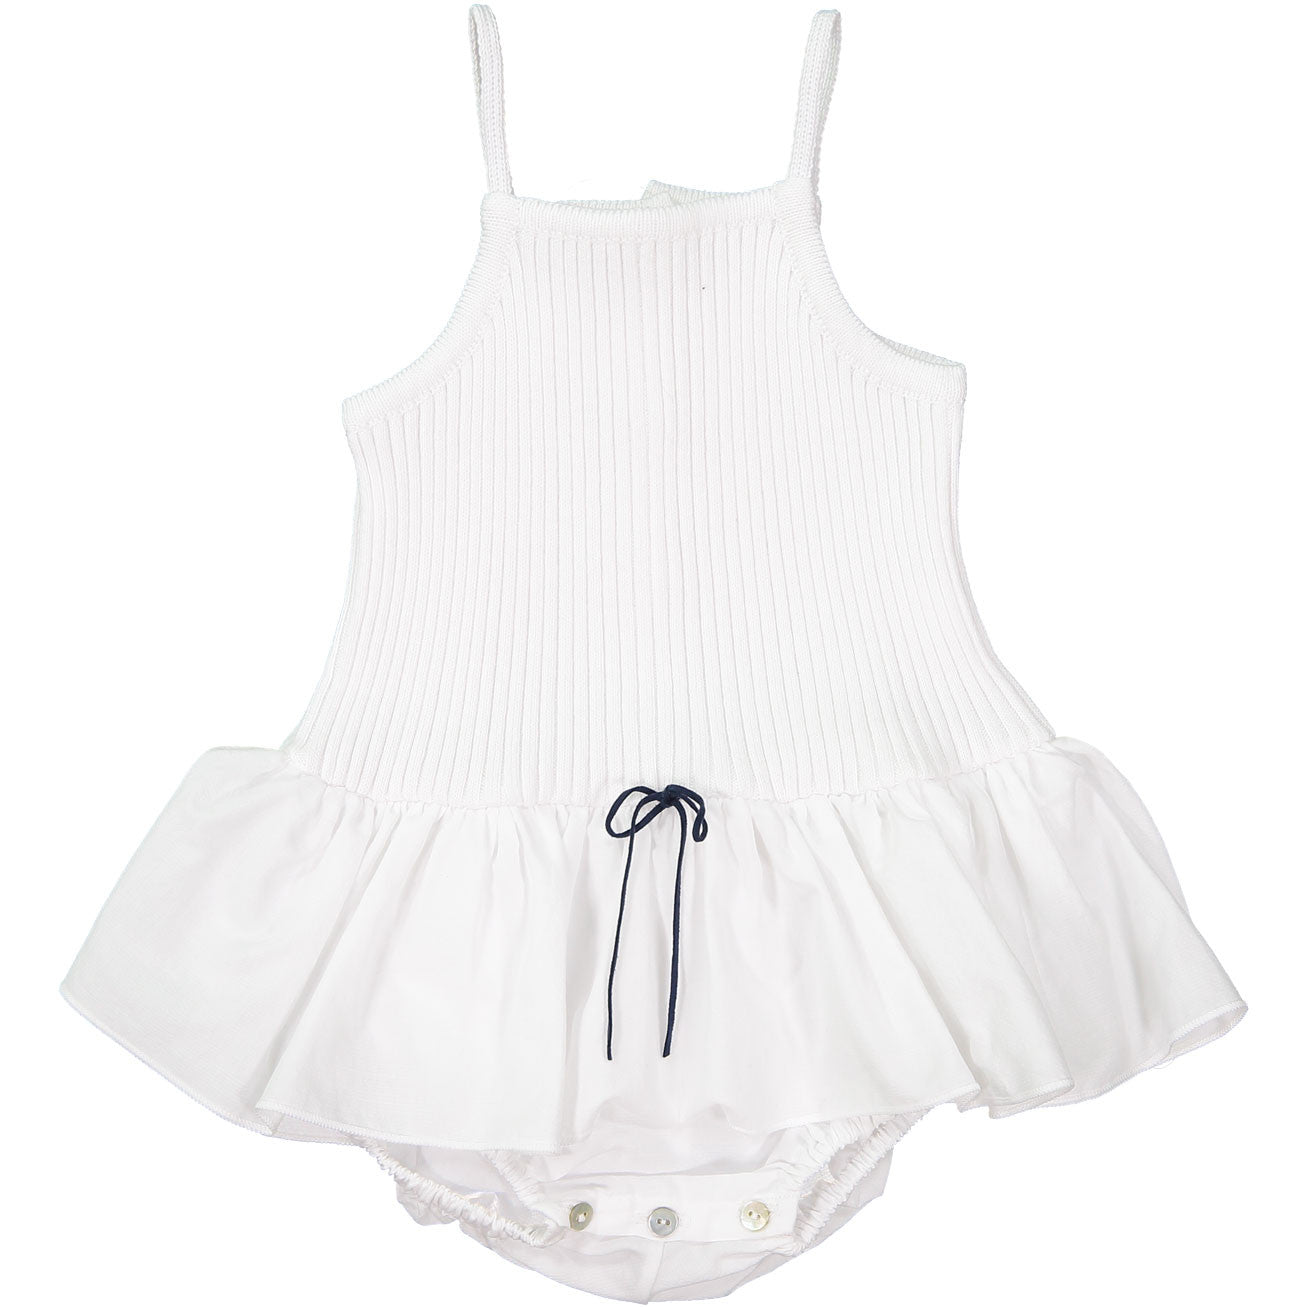 Pequeno Tocon White Ribbed Skirt Onesie - Ladida